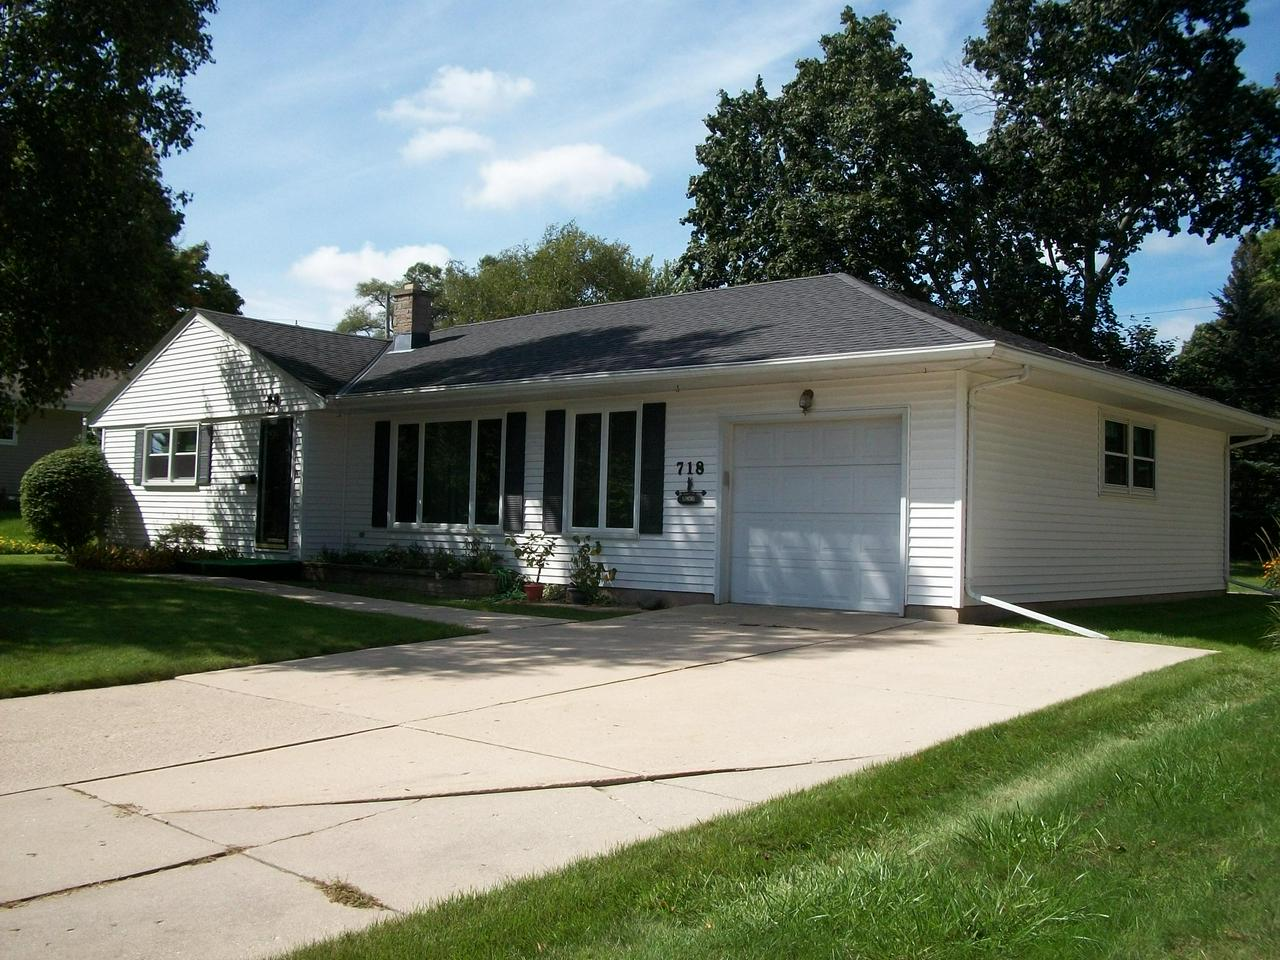 Very nice, one owner ranch home, with great curb appeal, in West Bend location! All the major items have been updated in the last 4 years, such as, roof, gutters, windows, furnace and doors. Very spacious rooms. The backyard is a nice size, features a concrete patio and affords you some privacy. Includes all appliances too! To see is to buy!!